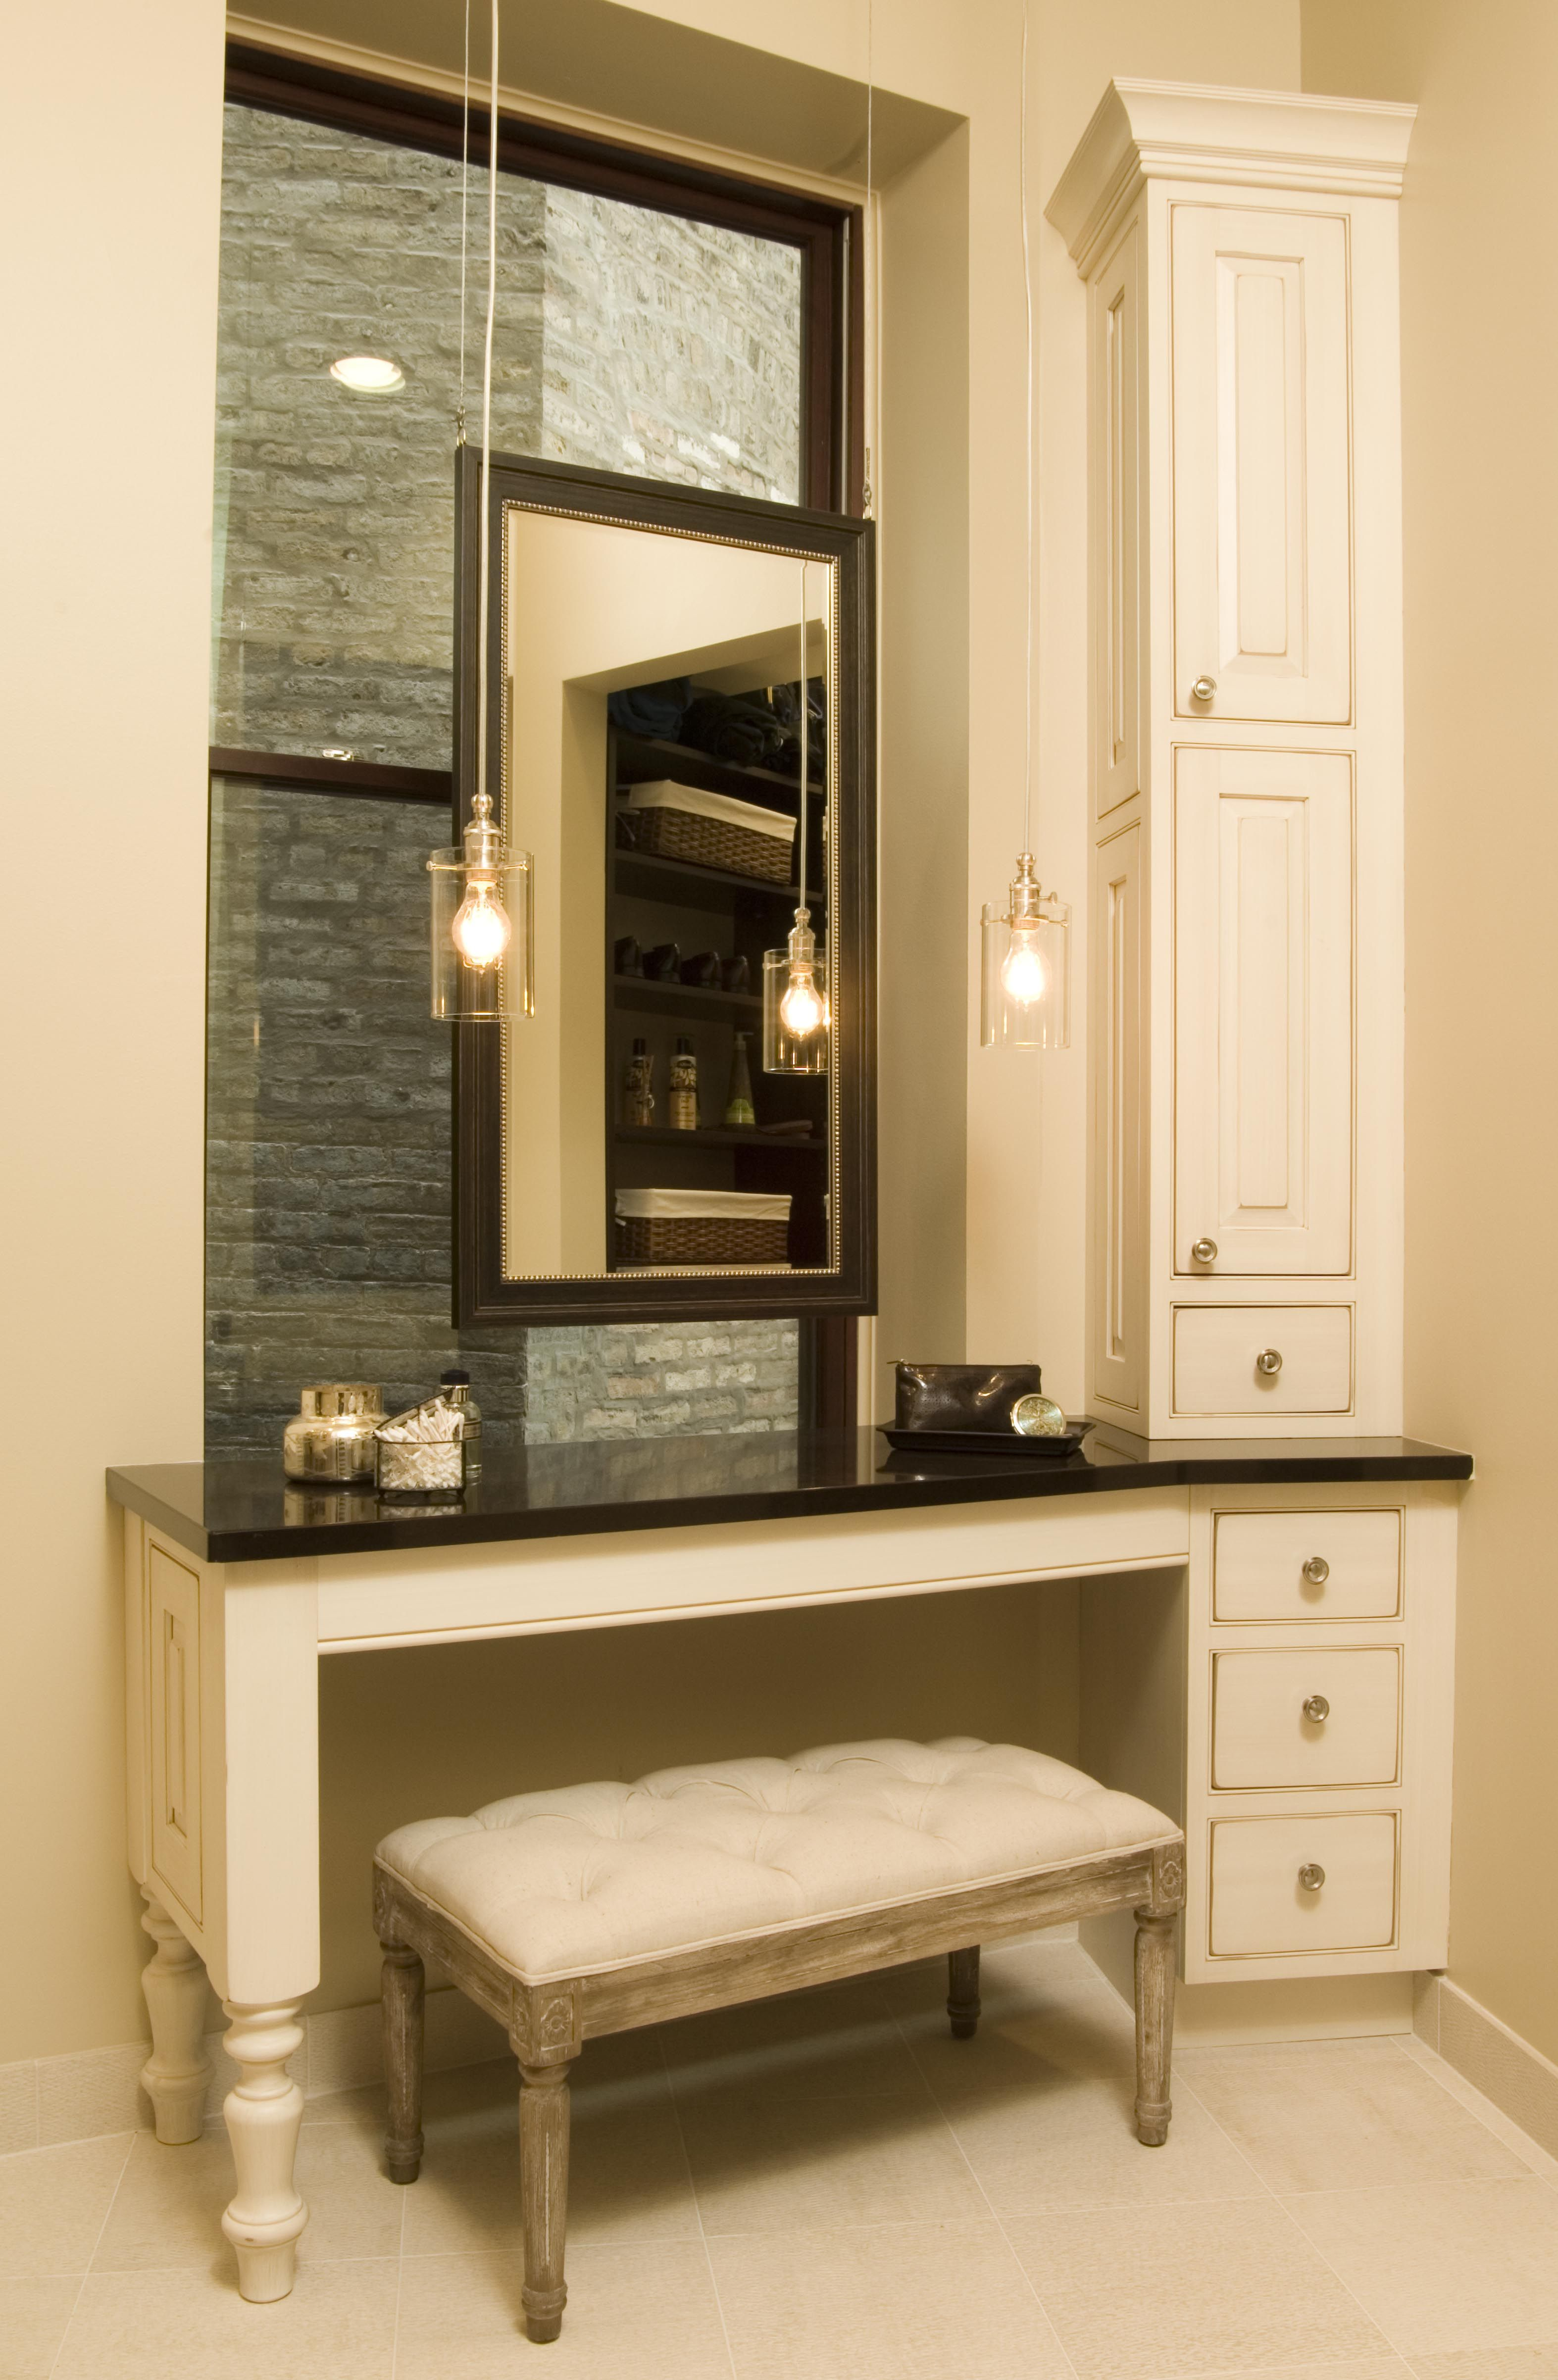 Make Up Vanity By Daft Interiors Home Decor Pinterest